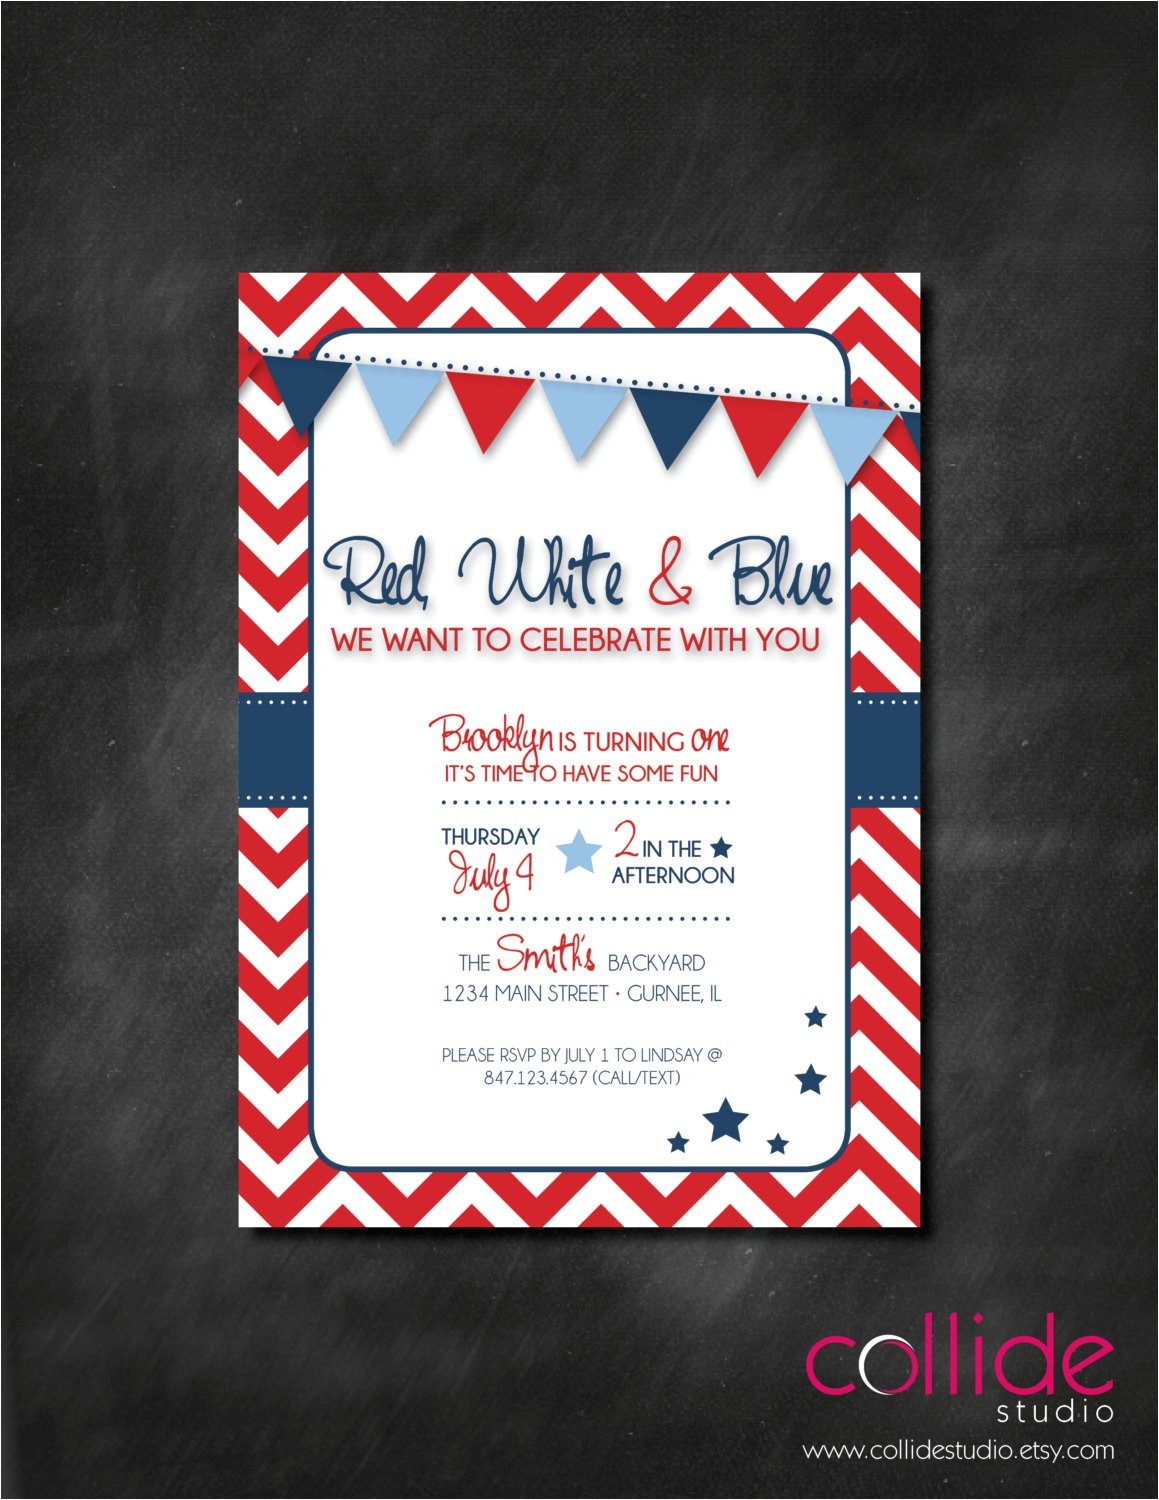 red white blue birthday party or bbq